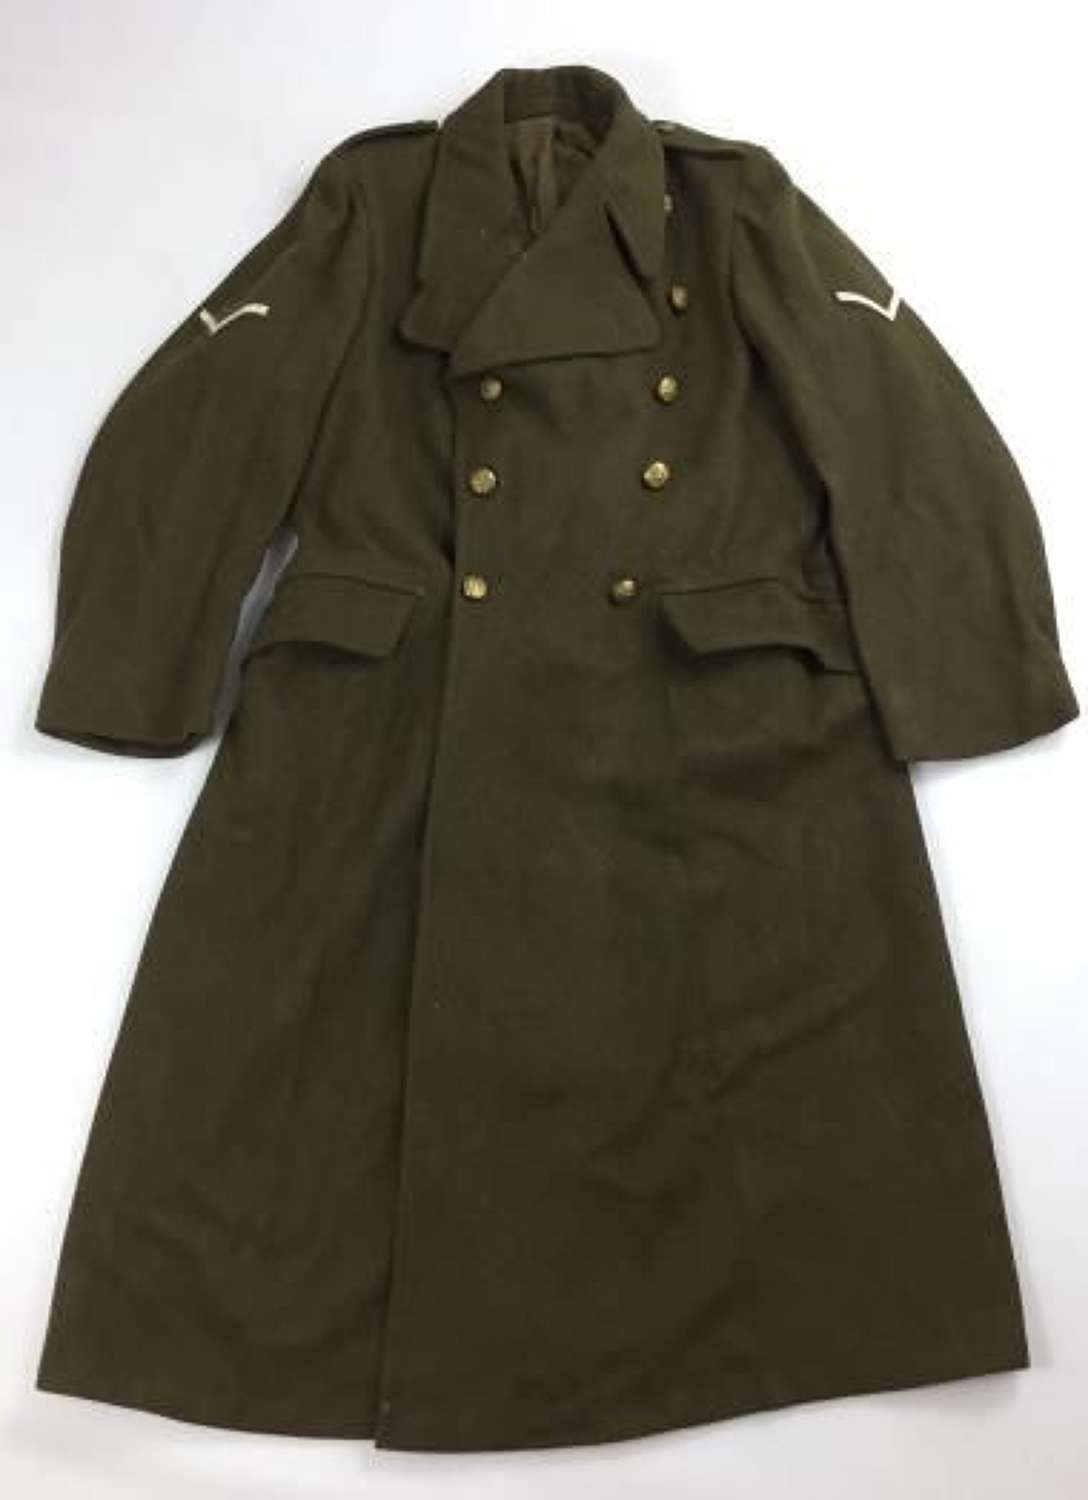 Origina 1955 Dated Greatcoat, Dismounted, 1951 Pattern - Size 9